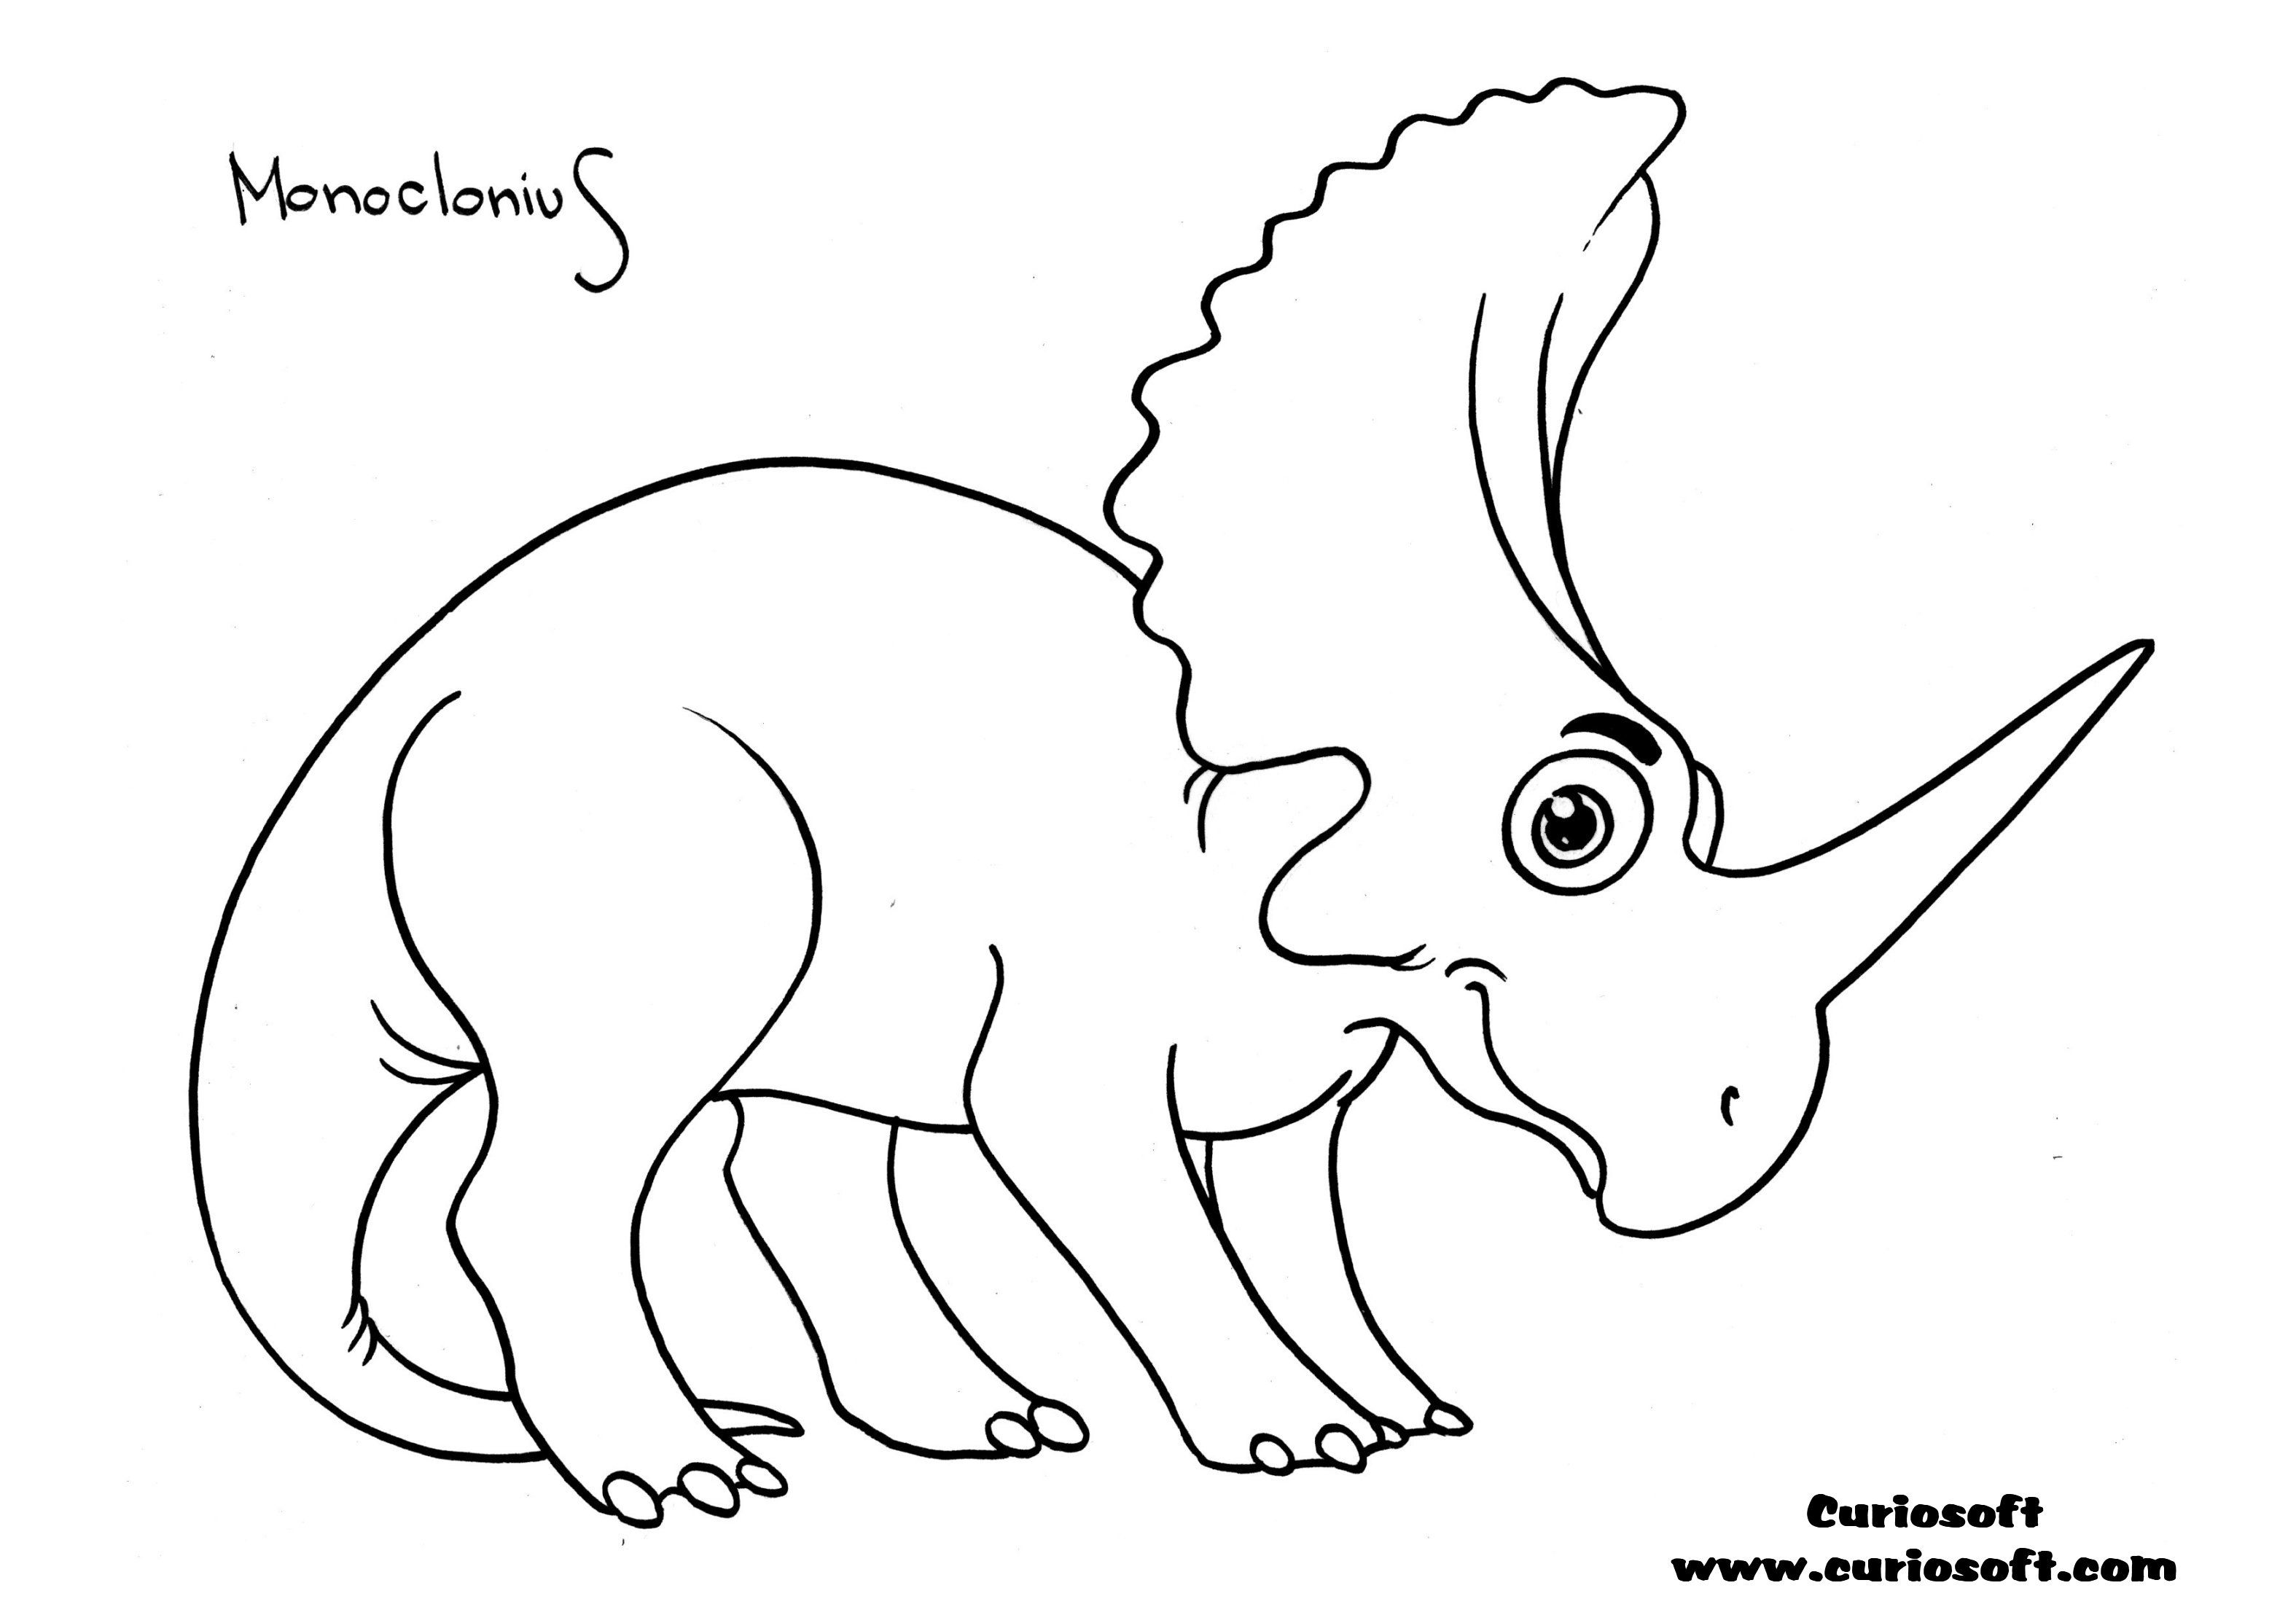 Free Kids Games Coloring Pages Free Games For Kids Dinosaur